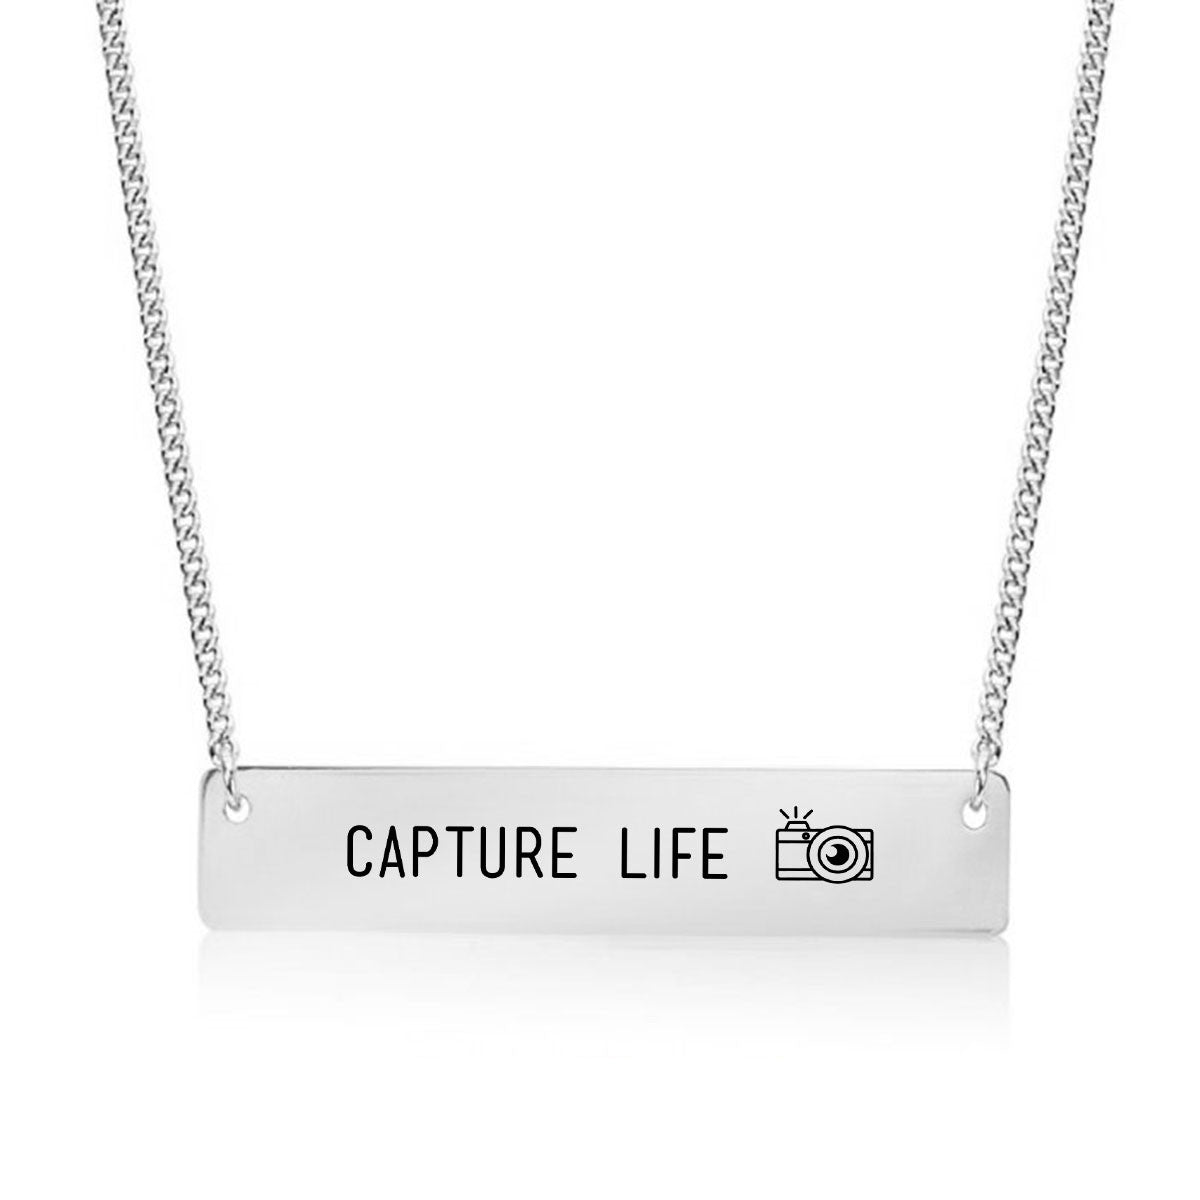 Capture Life - Photographer's Gold / Silver Bar Necklace - pipercleo.com